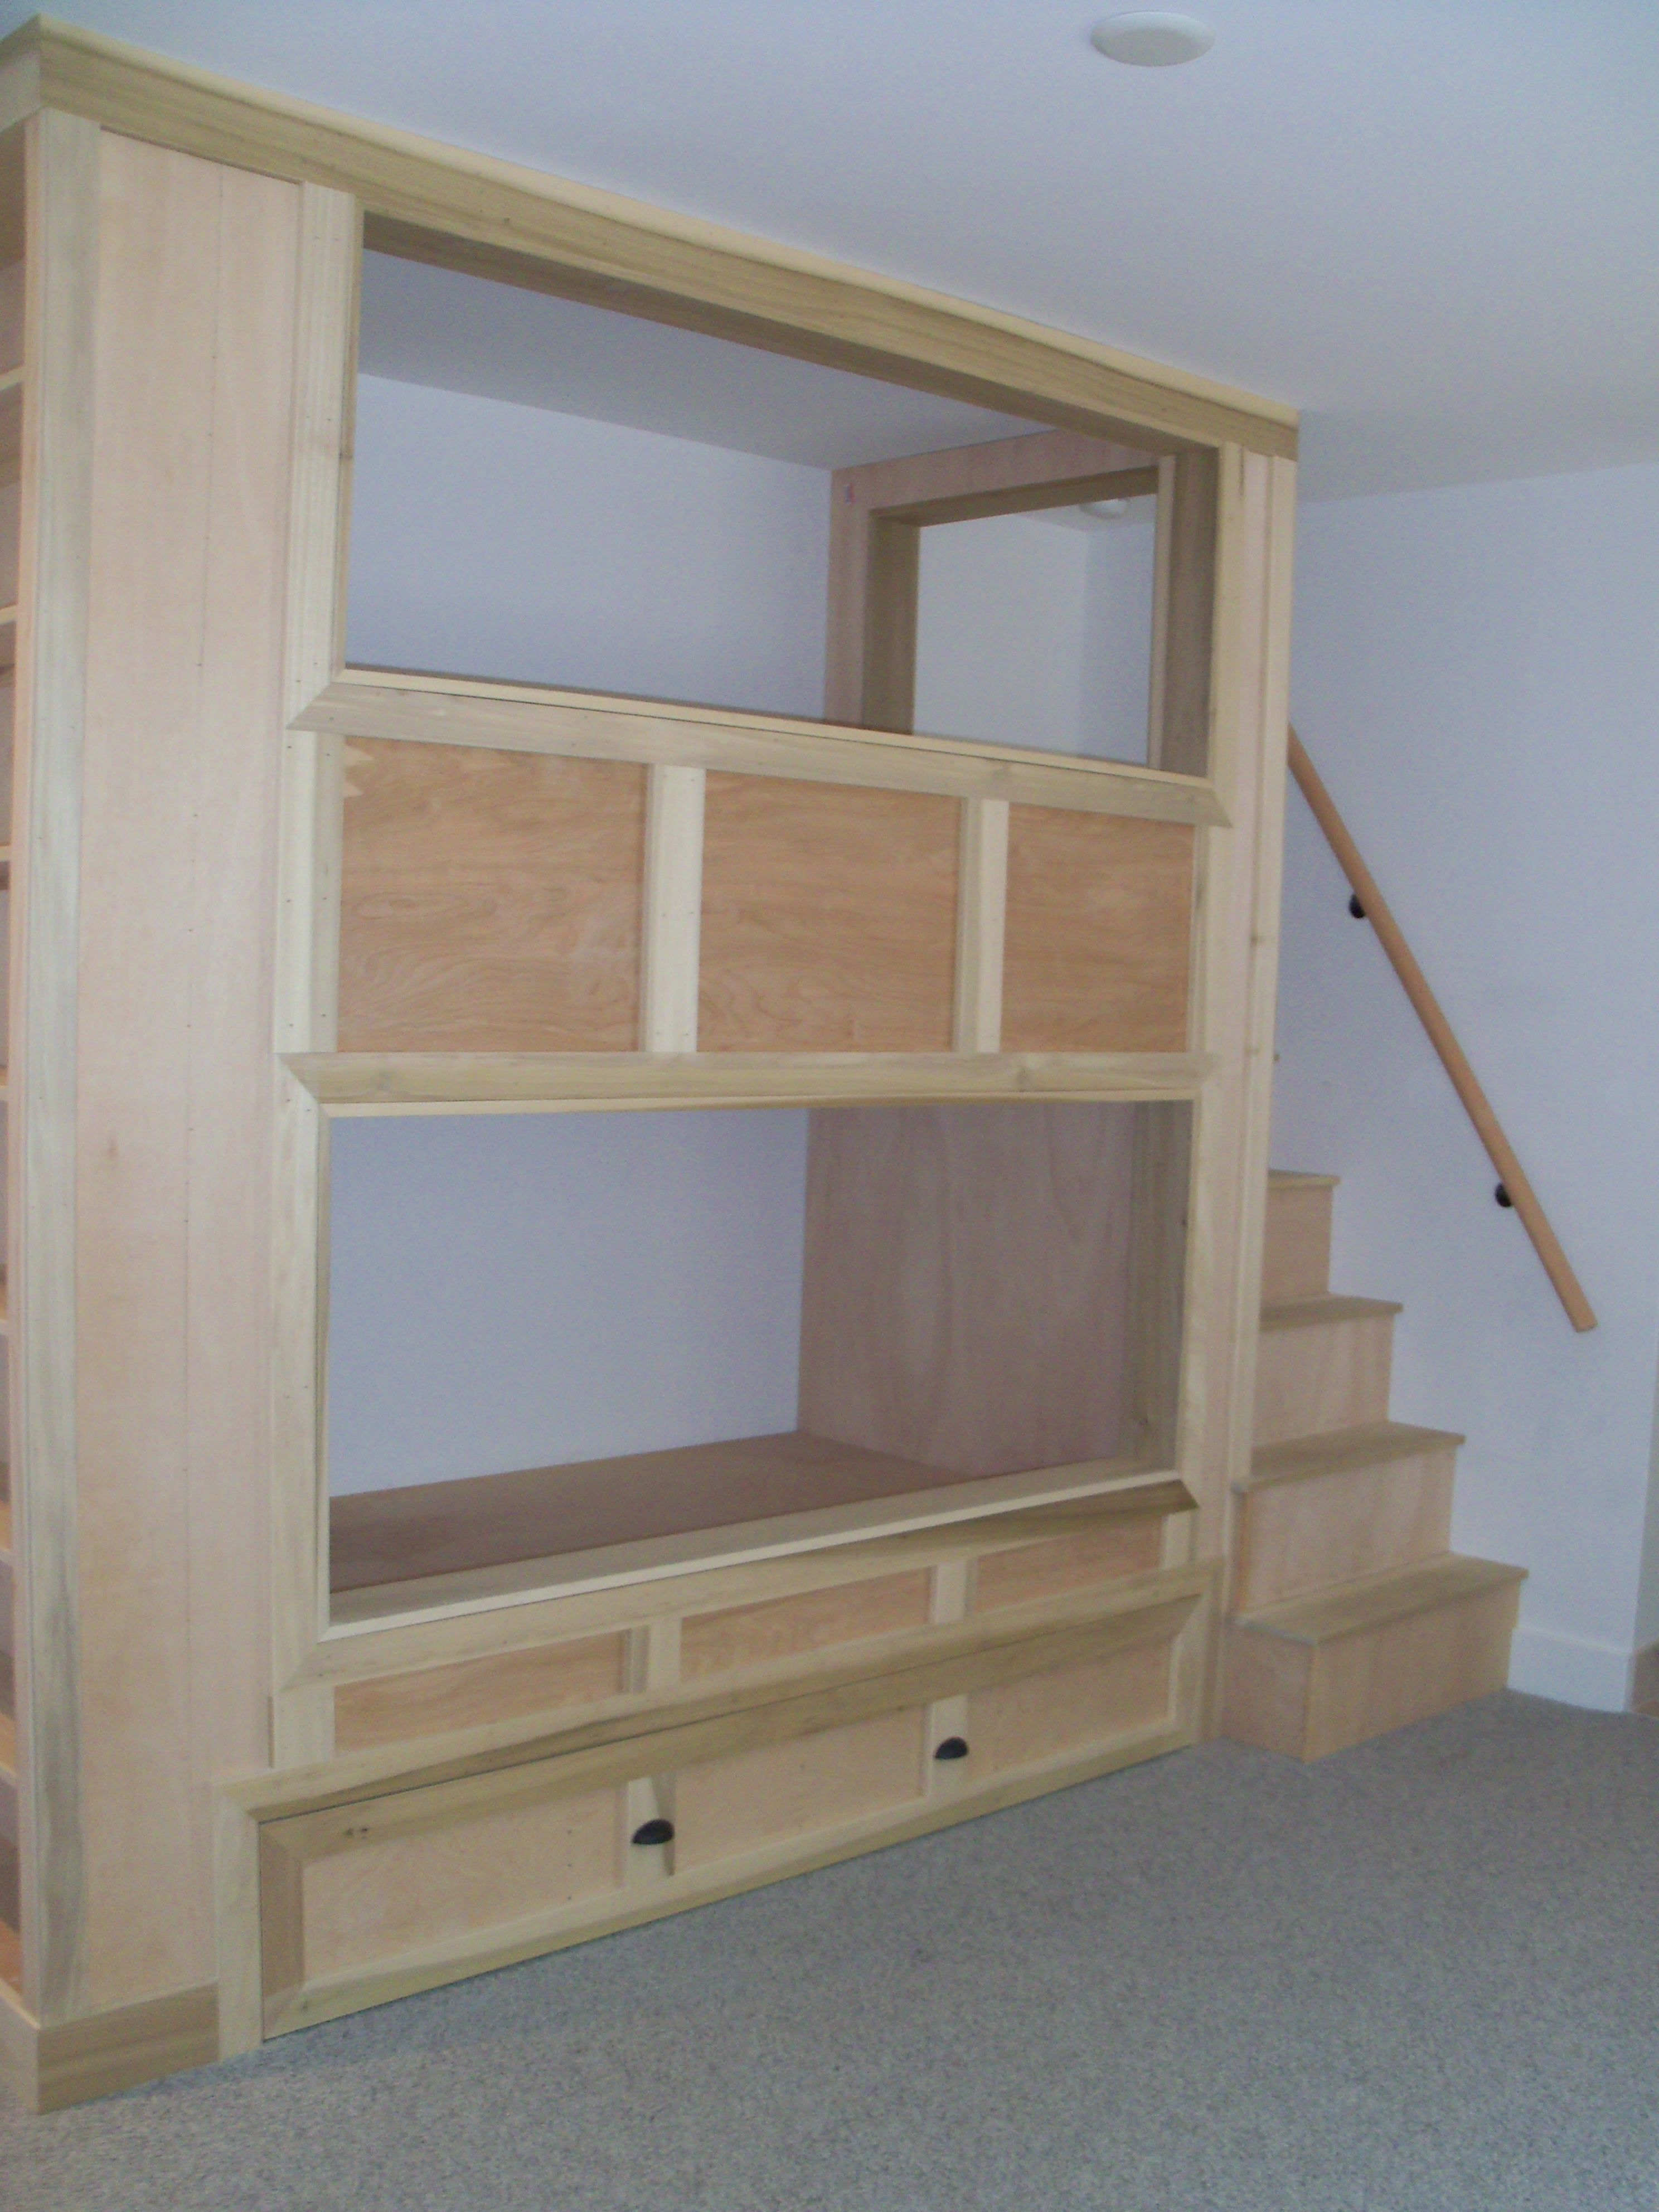 Built in bunk beds with bookshelves and pull out trundle bed 2